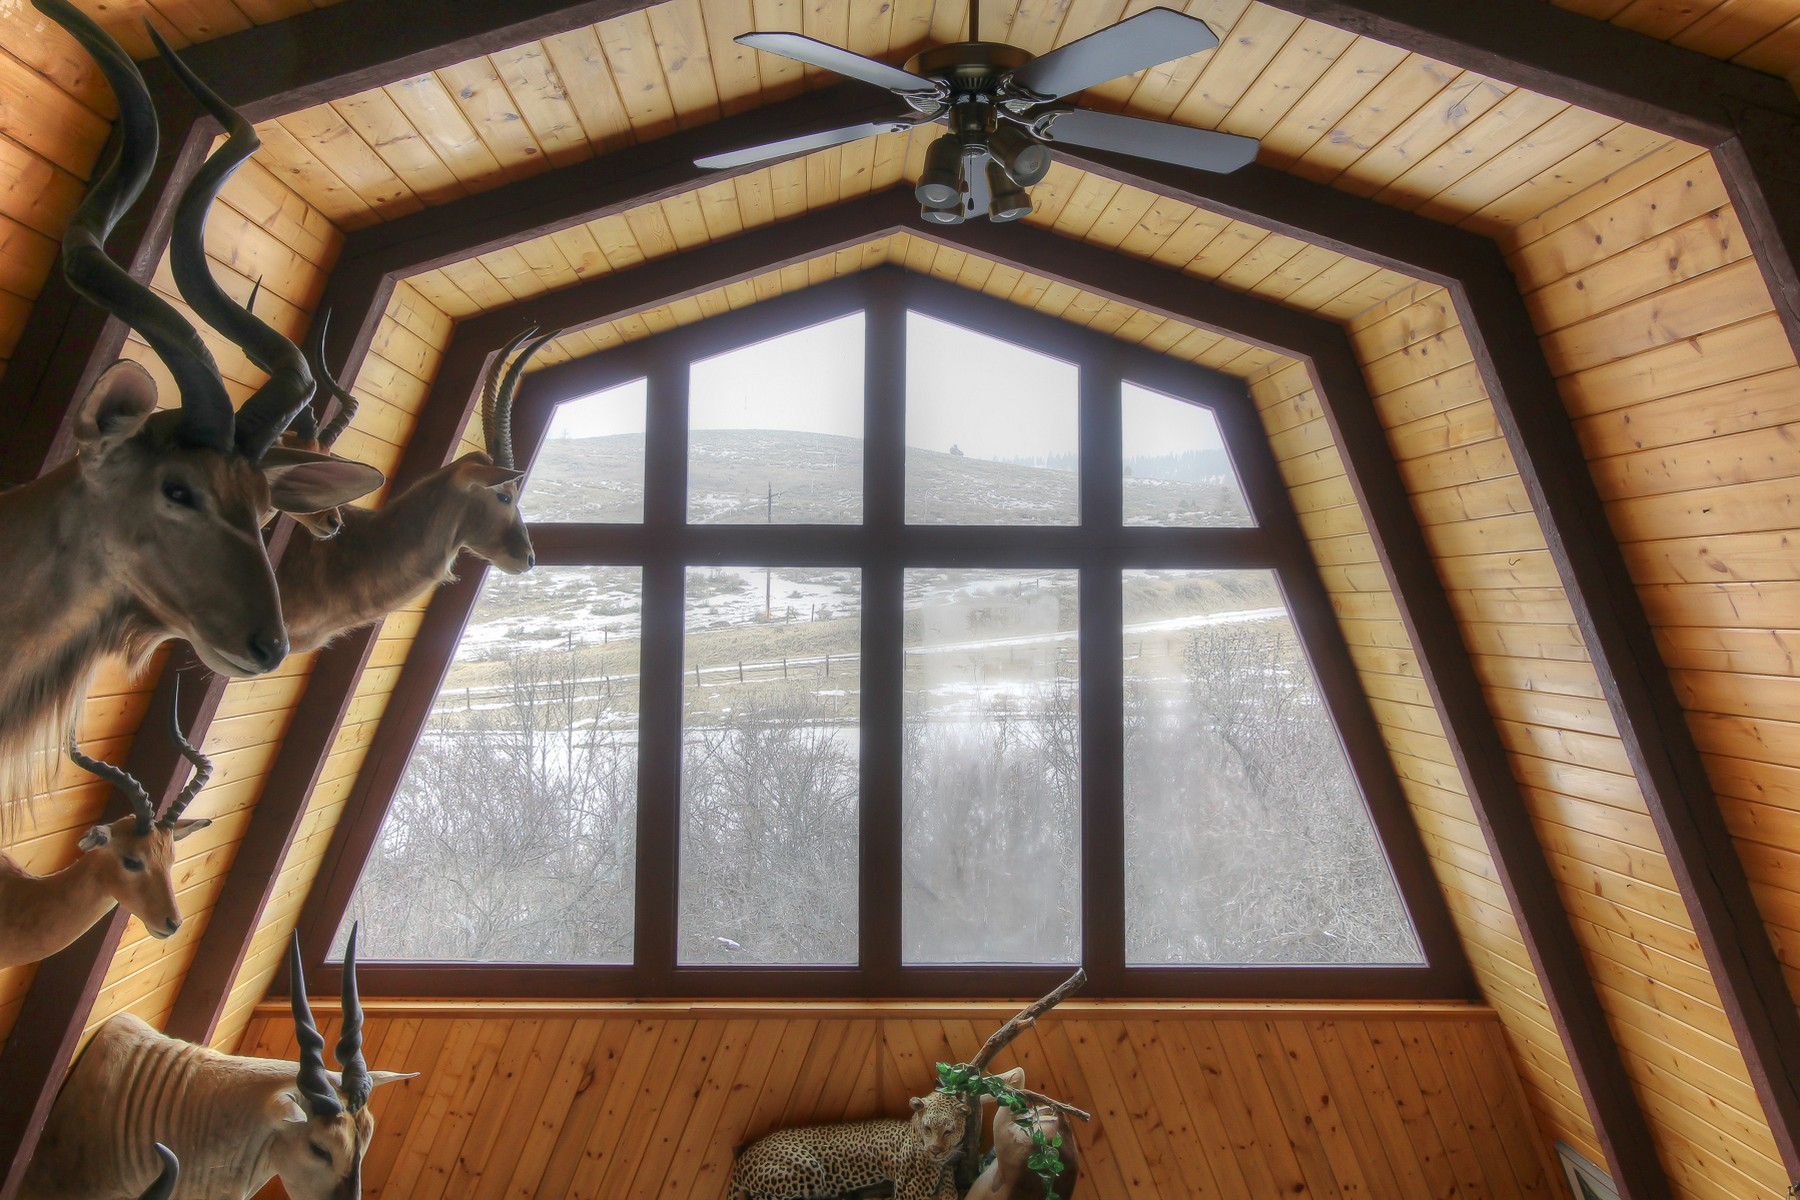 Additional photo for property listing at 9450 Butler Creek Rd , Missoula, MT 59808 9450  Butler Creek Rd Missoula, Montana 59808 United States